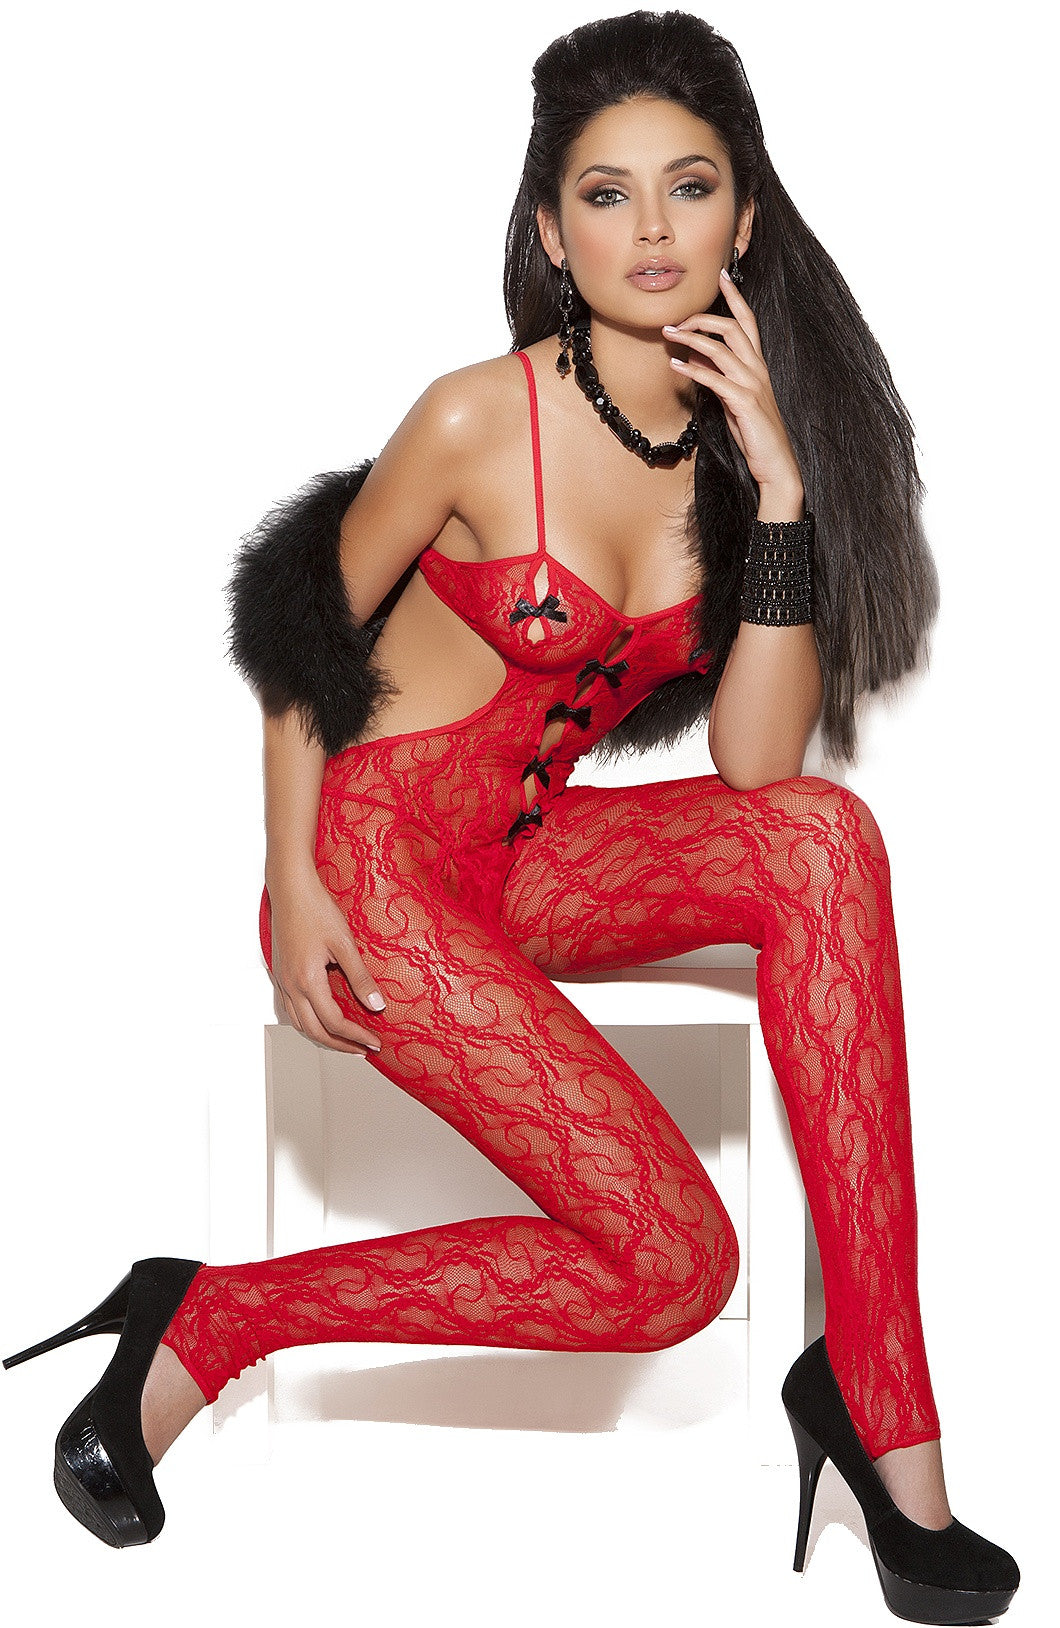 EM-8703 Red bodystocking - Sexylingerieland  - 1